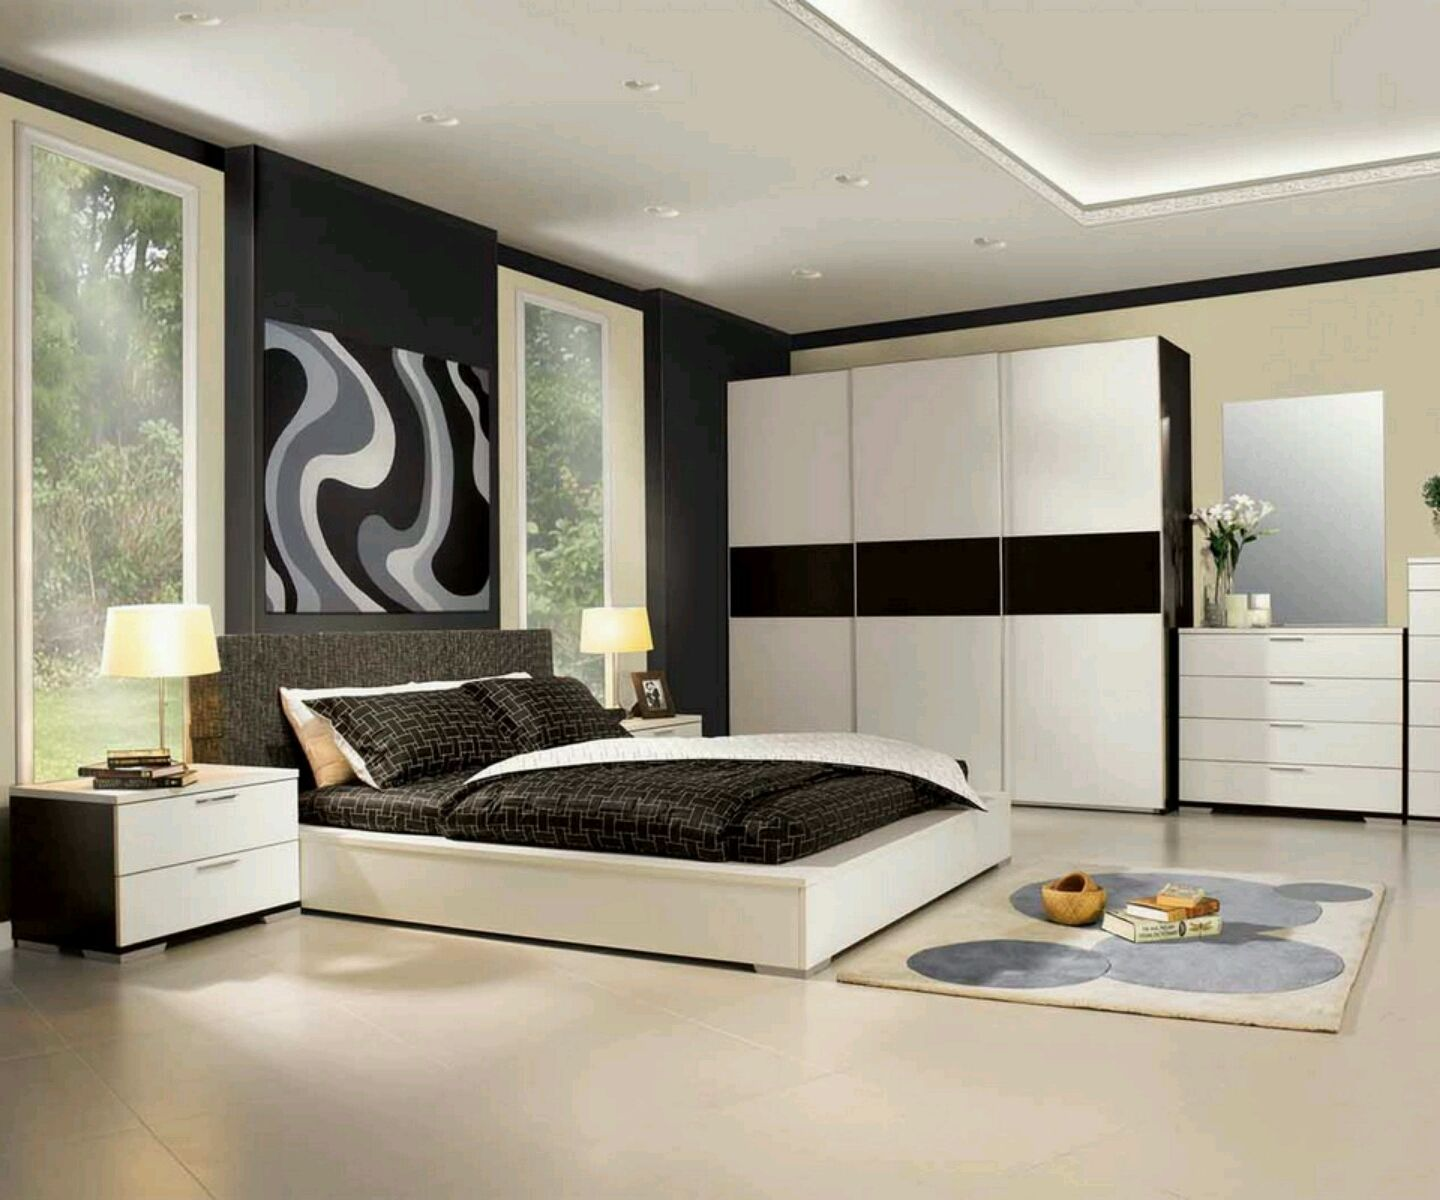 Home Design Bedroom Pin By Demi Mclean On Bedroom Furniture Bedroom Furniture Design